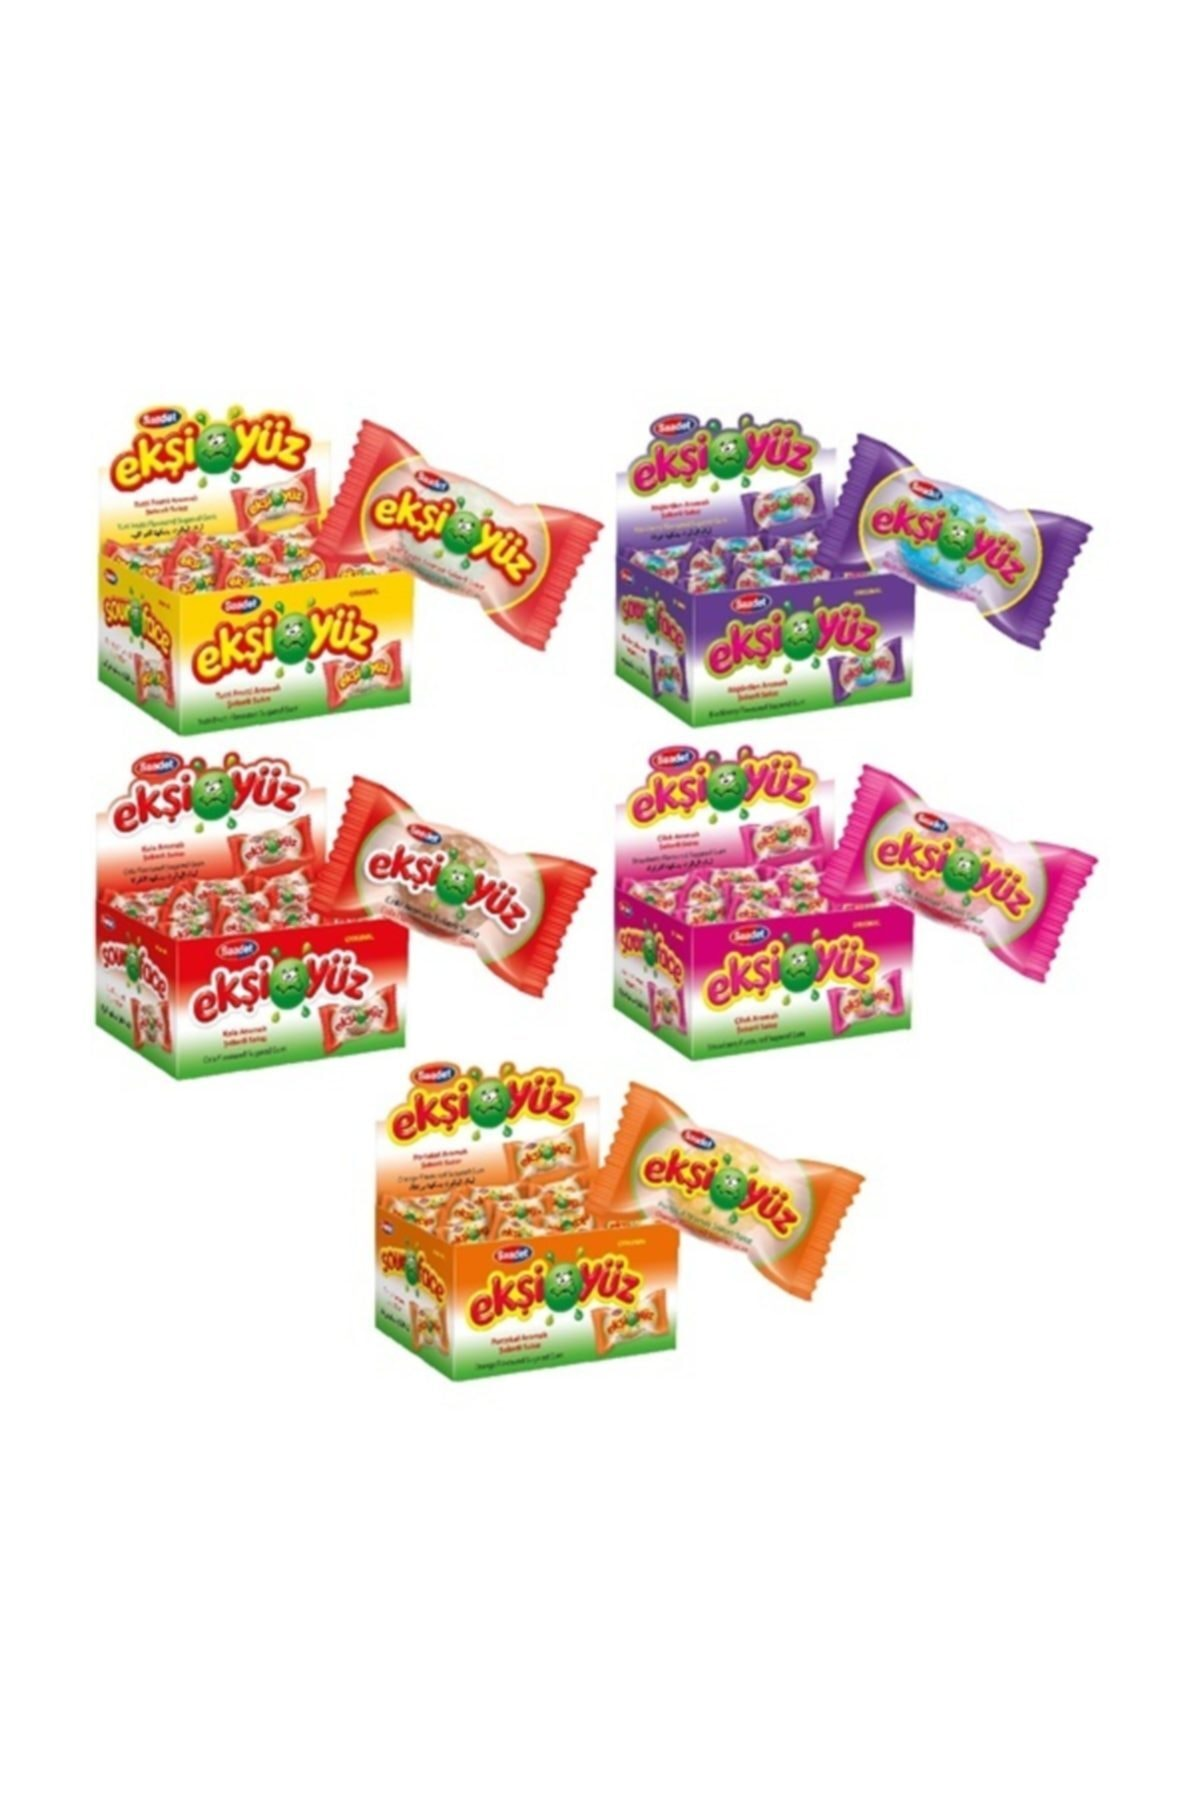 SAADET Ekşiyüz 5 Kinds of Chewing Gum 5 Pieces Cheap Box of 500 Pieces SHİPPİNG